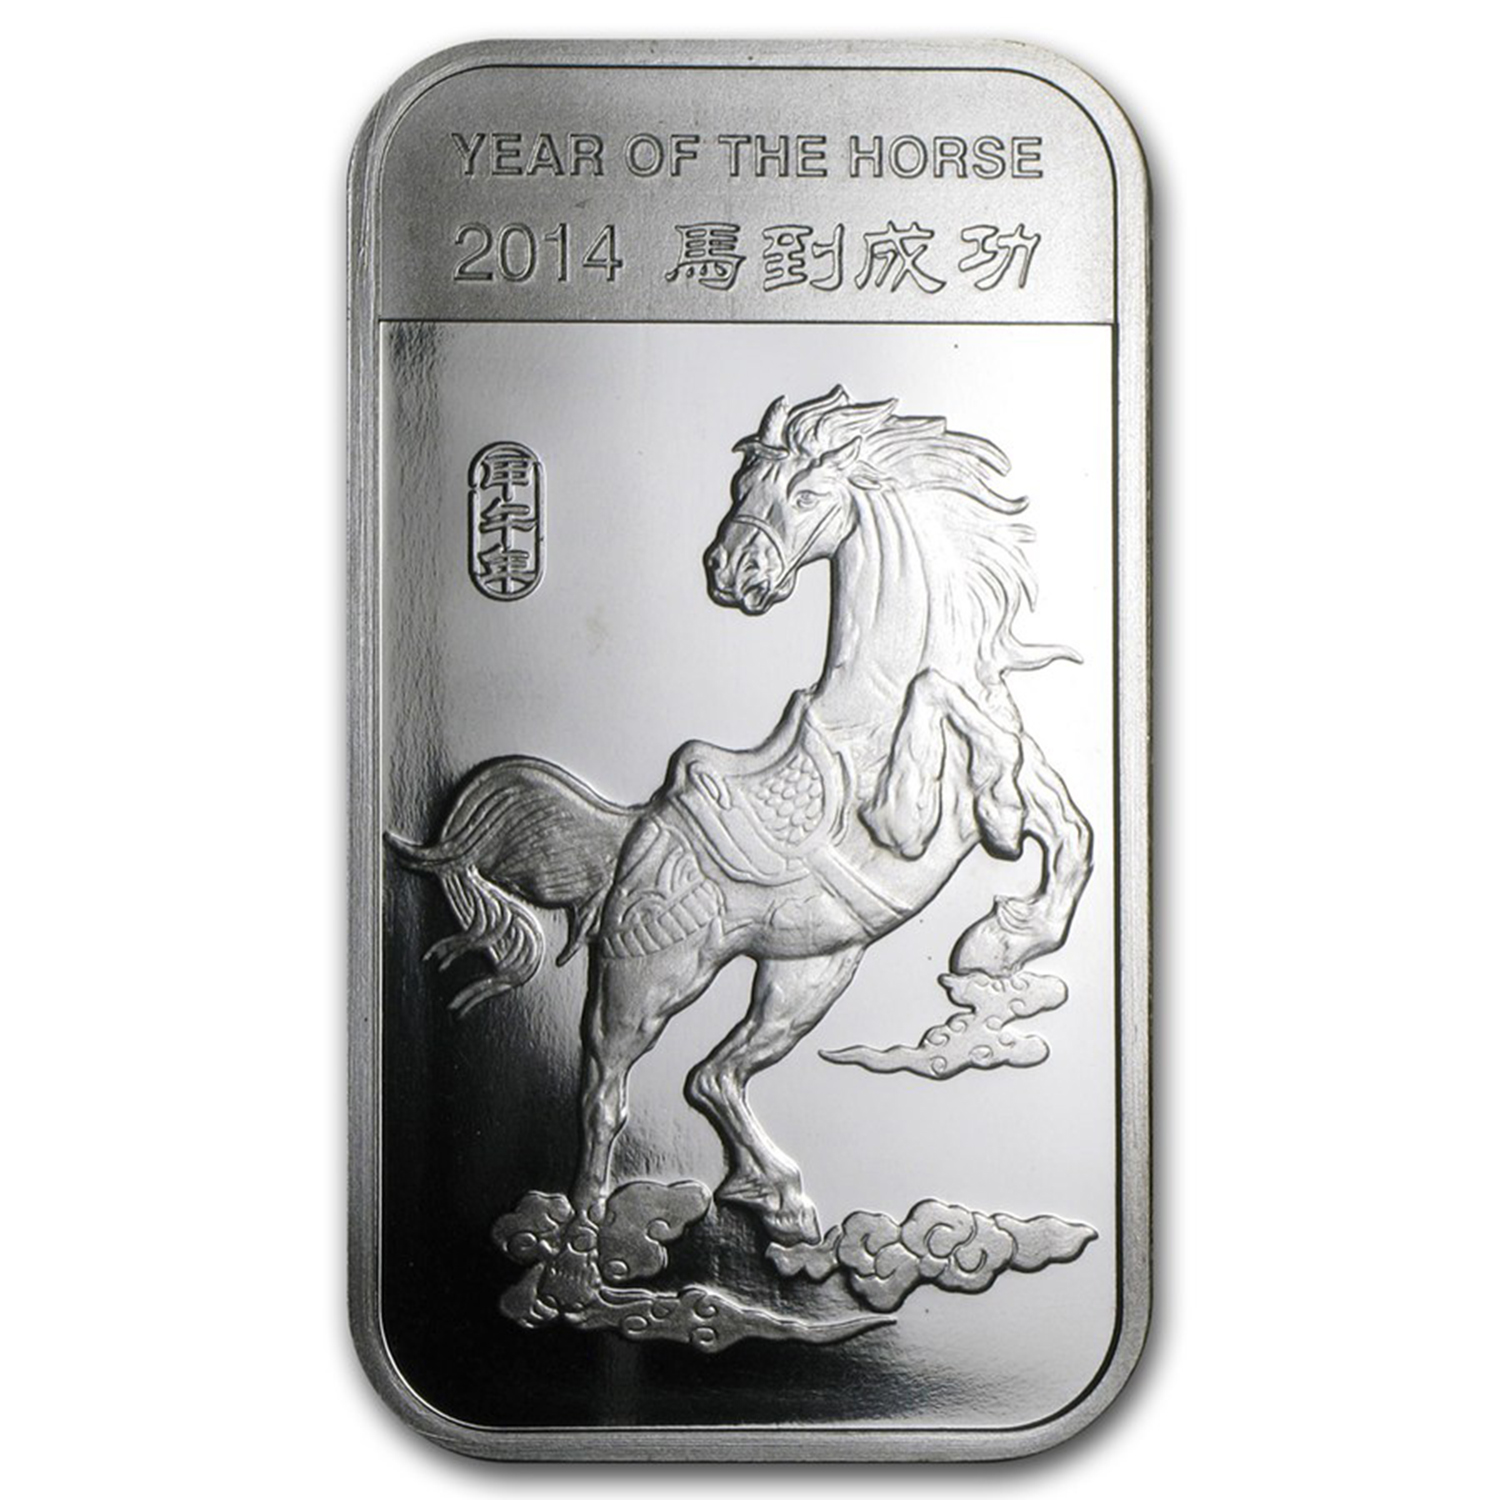 1 oz Silver Bar - APMEX (2014 Year of the Horse)